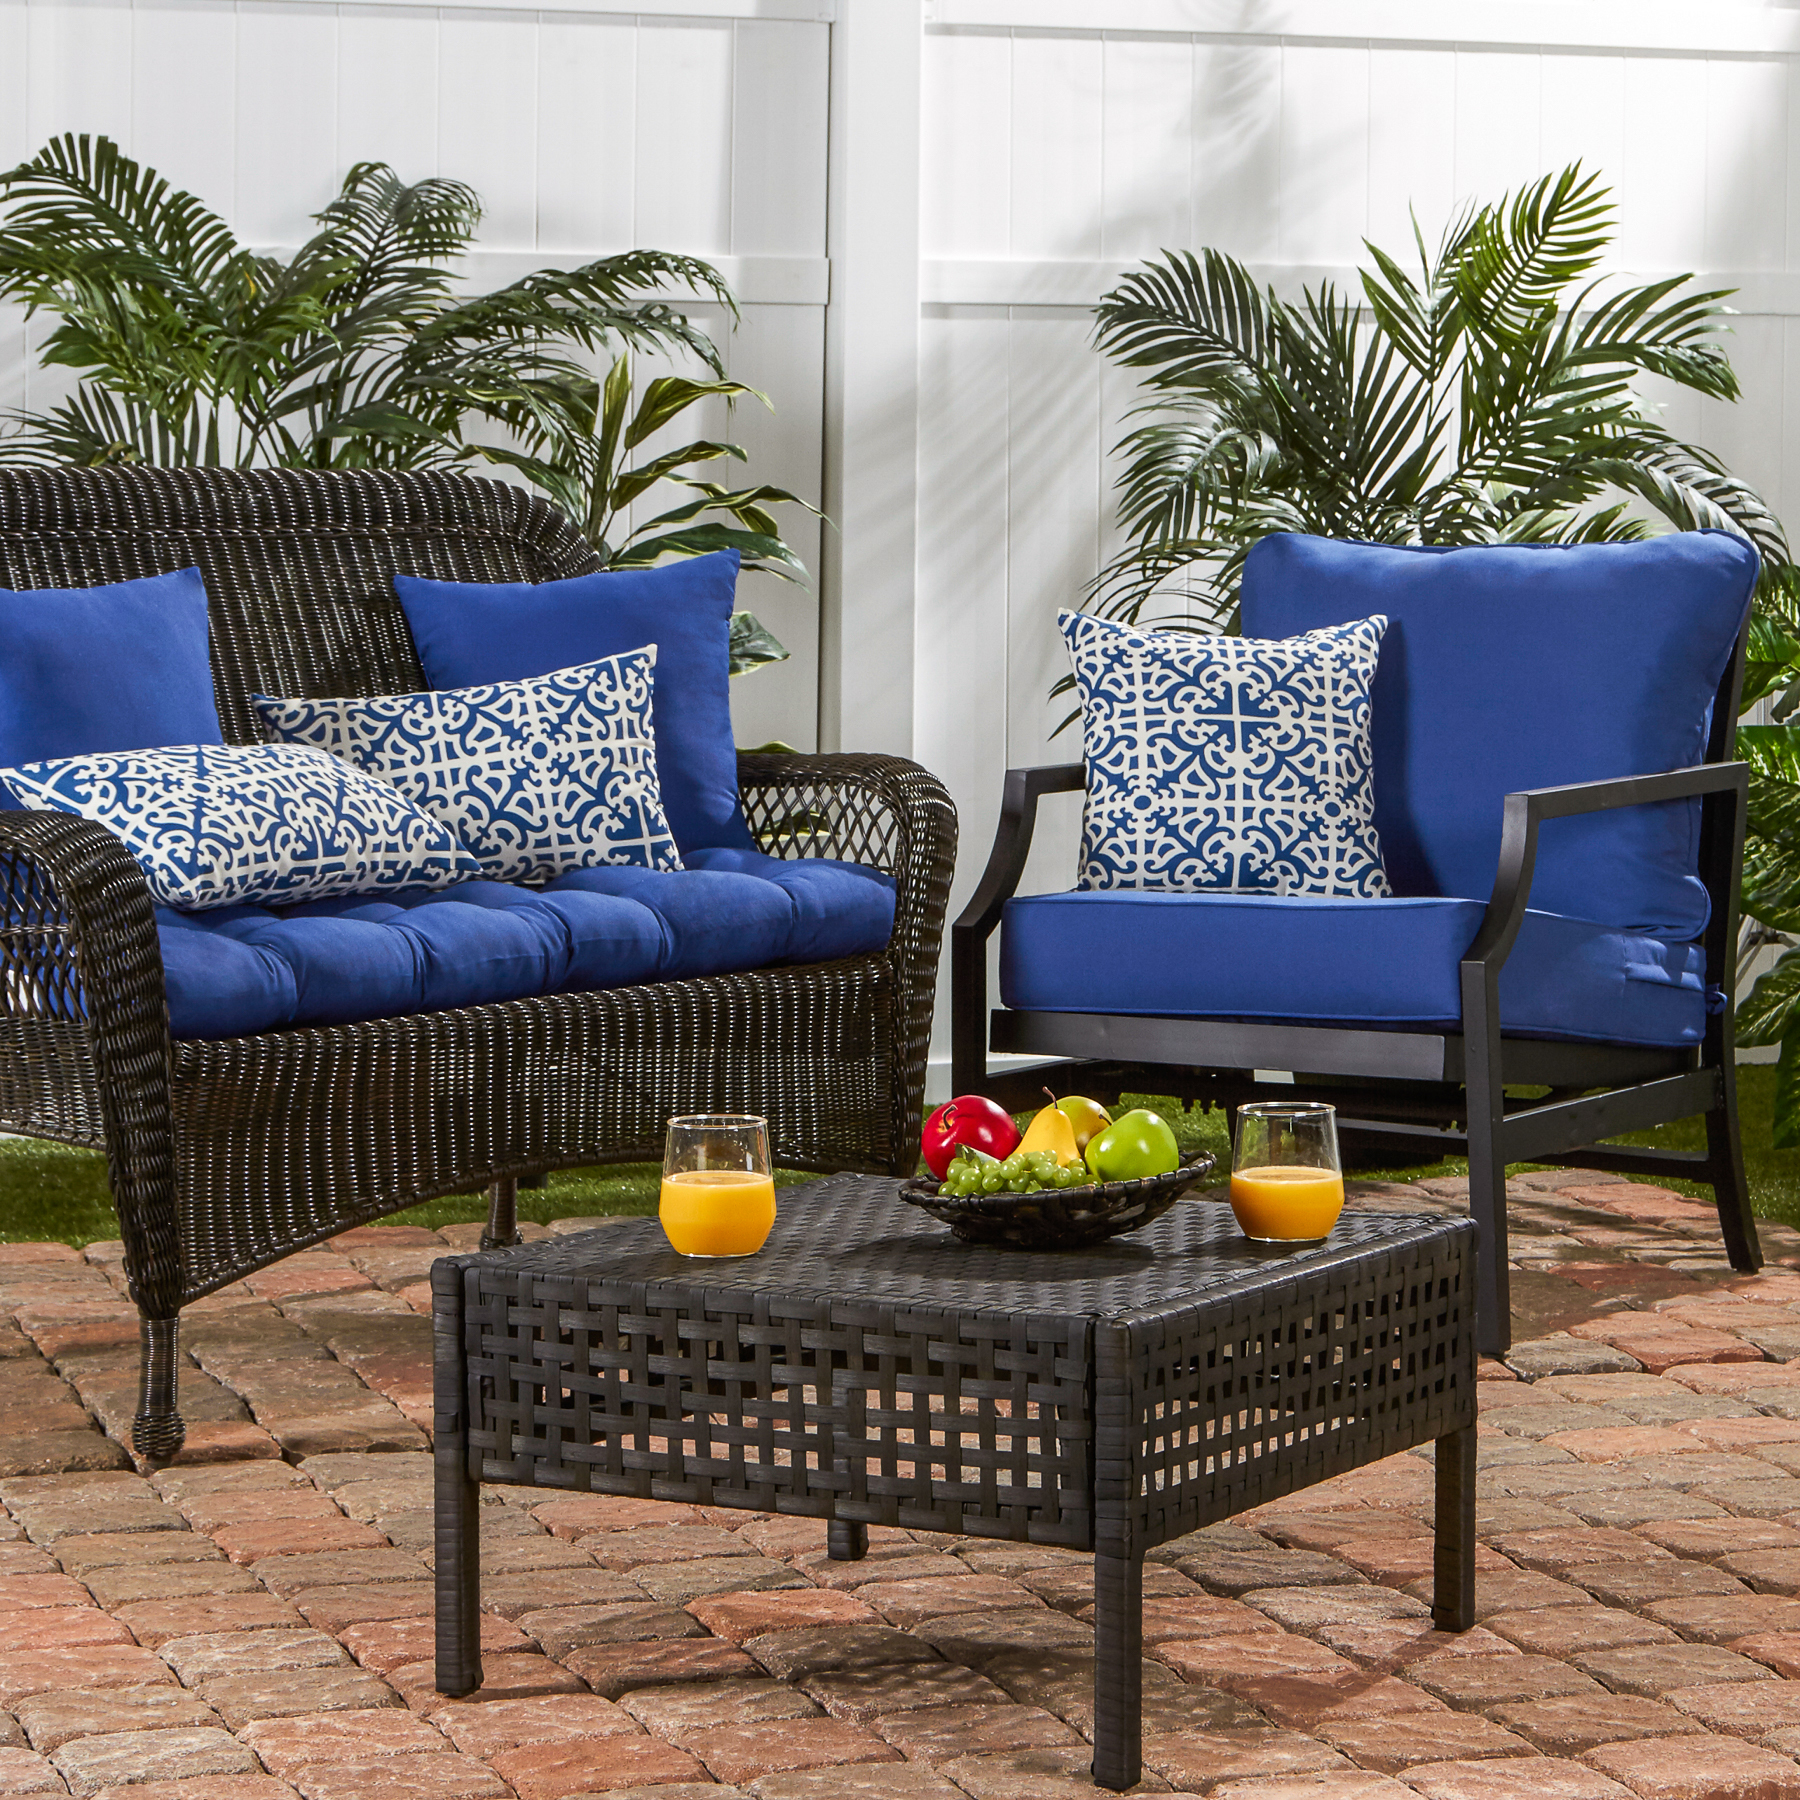 Rollbacks - Greendale Home Fashions Marine Outdoor Cushion Collection